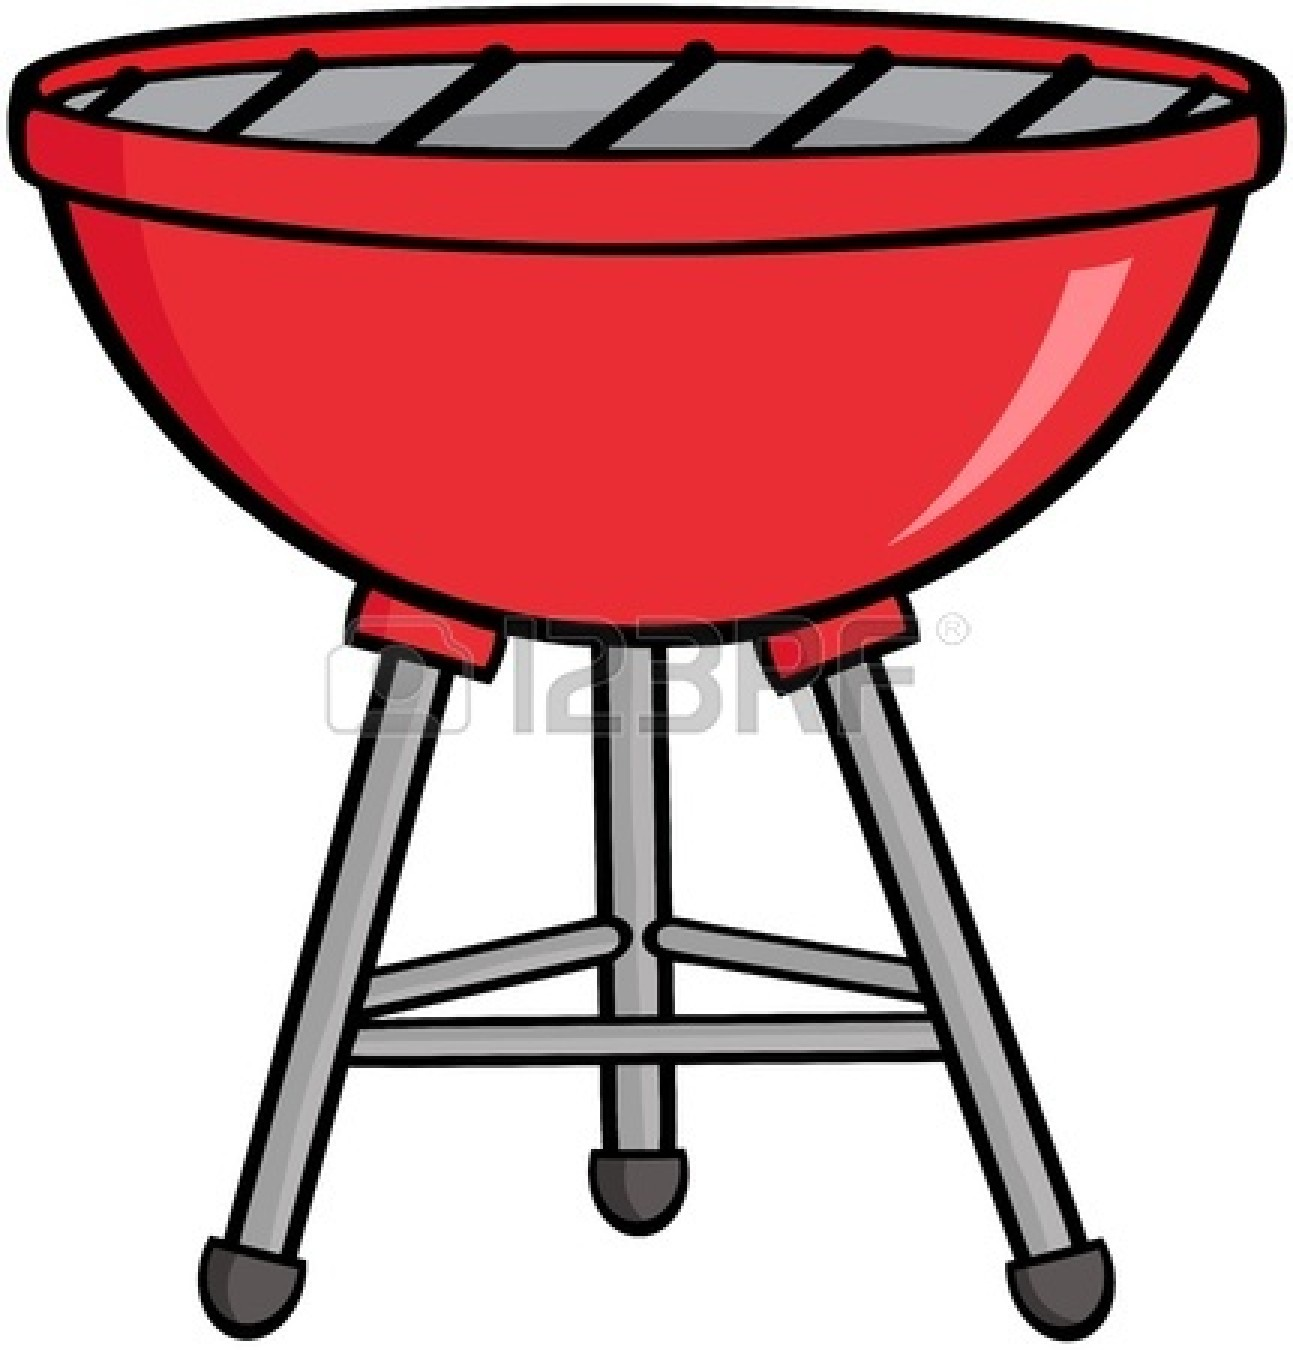 Grill clipart. Free download best on